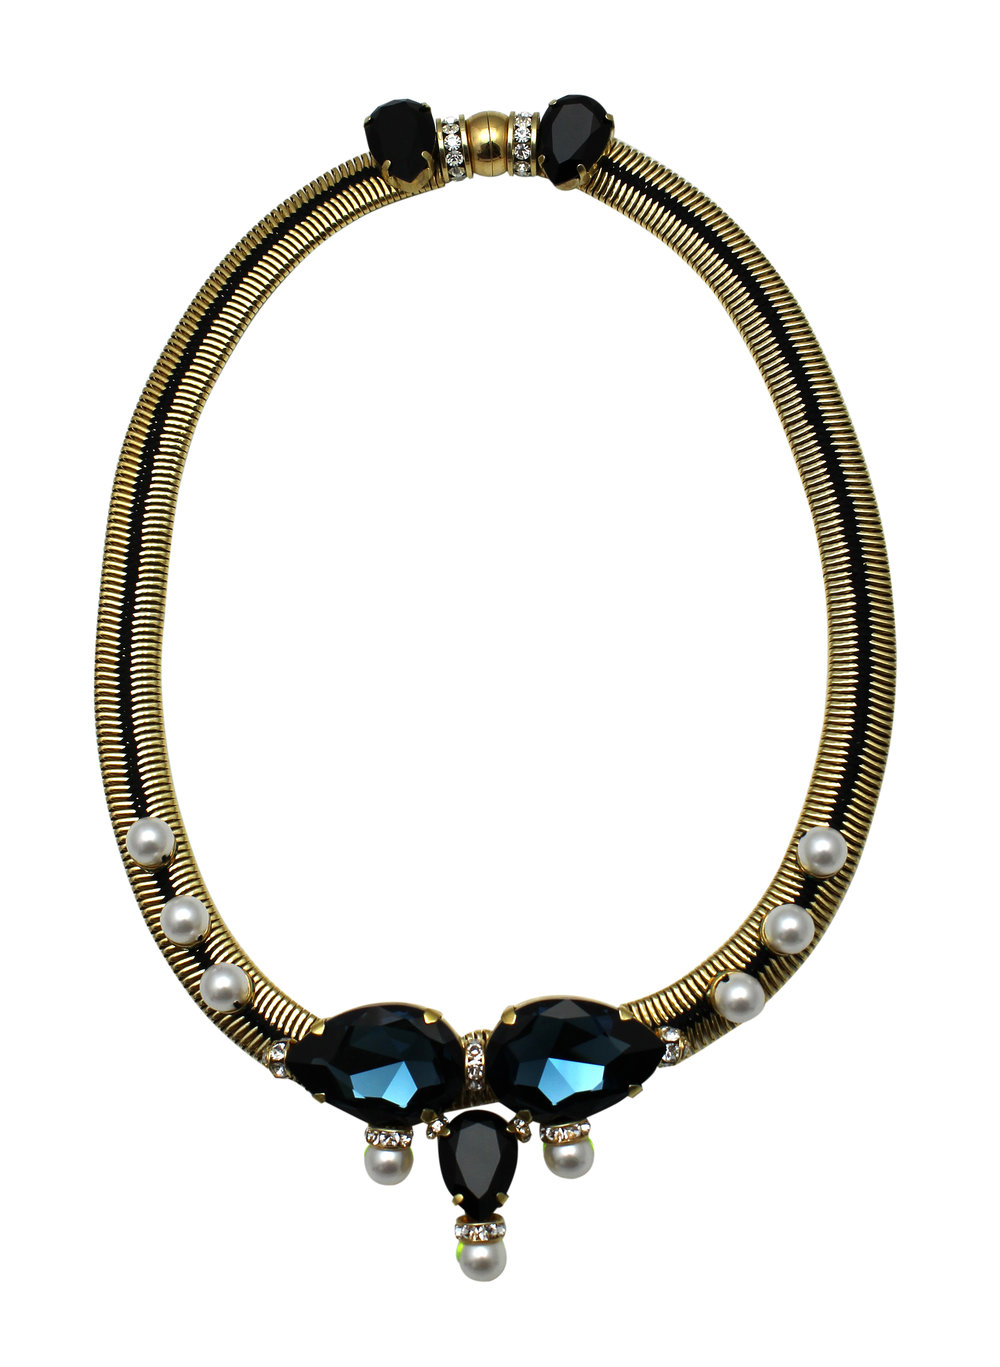 172N Monaco Necklace.jpg